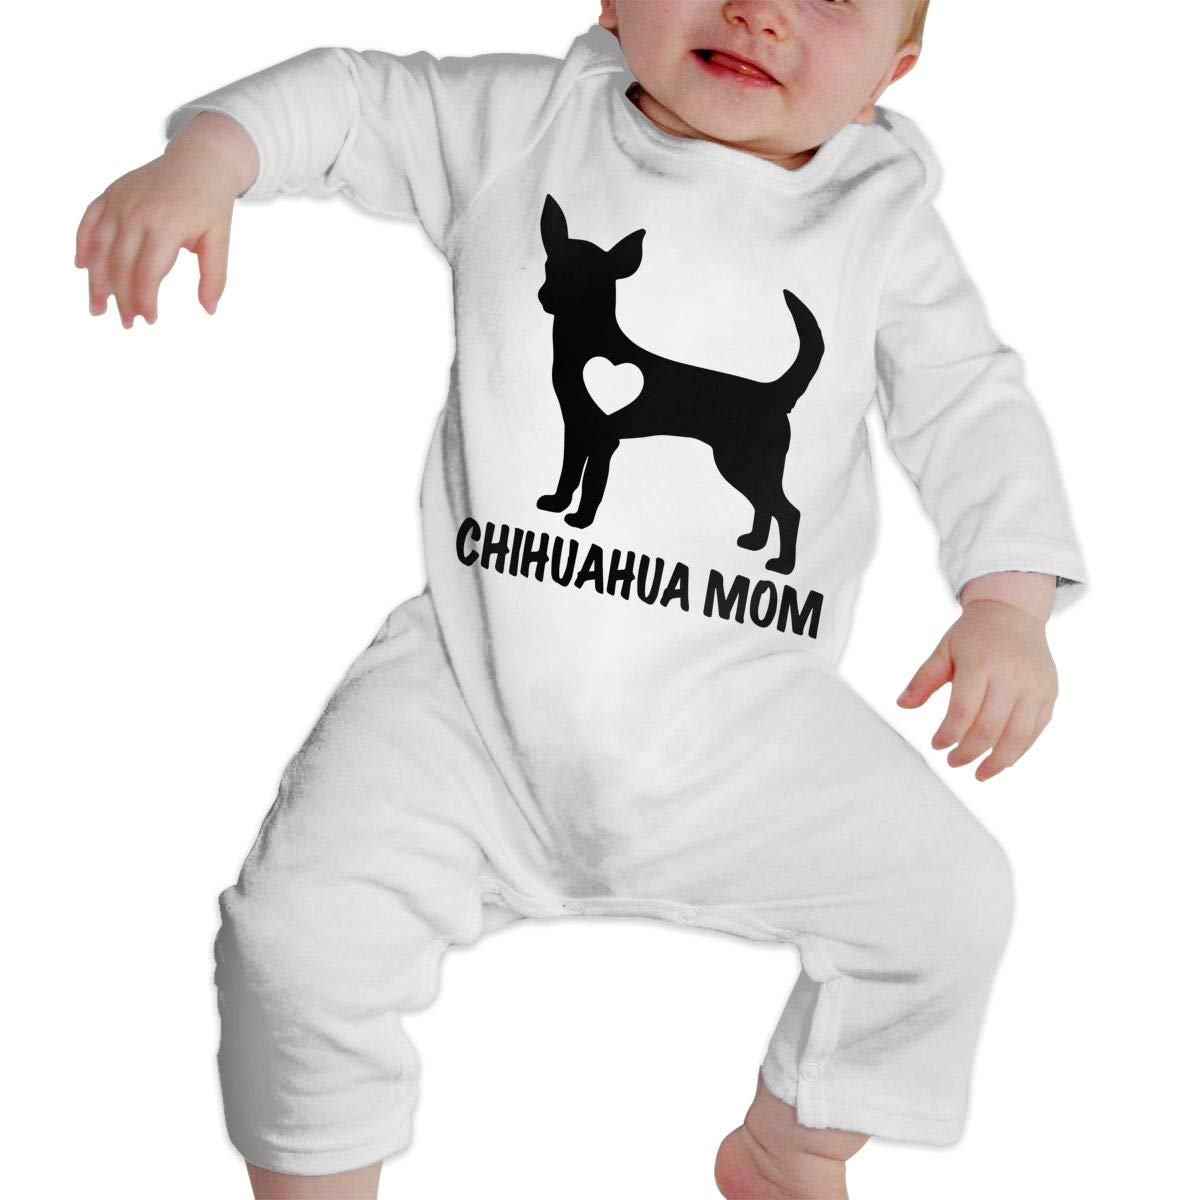 UGFGF-S3 Chihuahua Mom Baby Boy Girl Long Sleeve Romper Jumpsuit Coverall